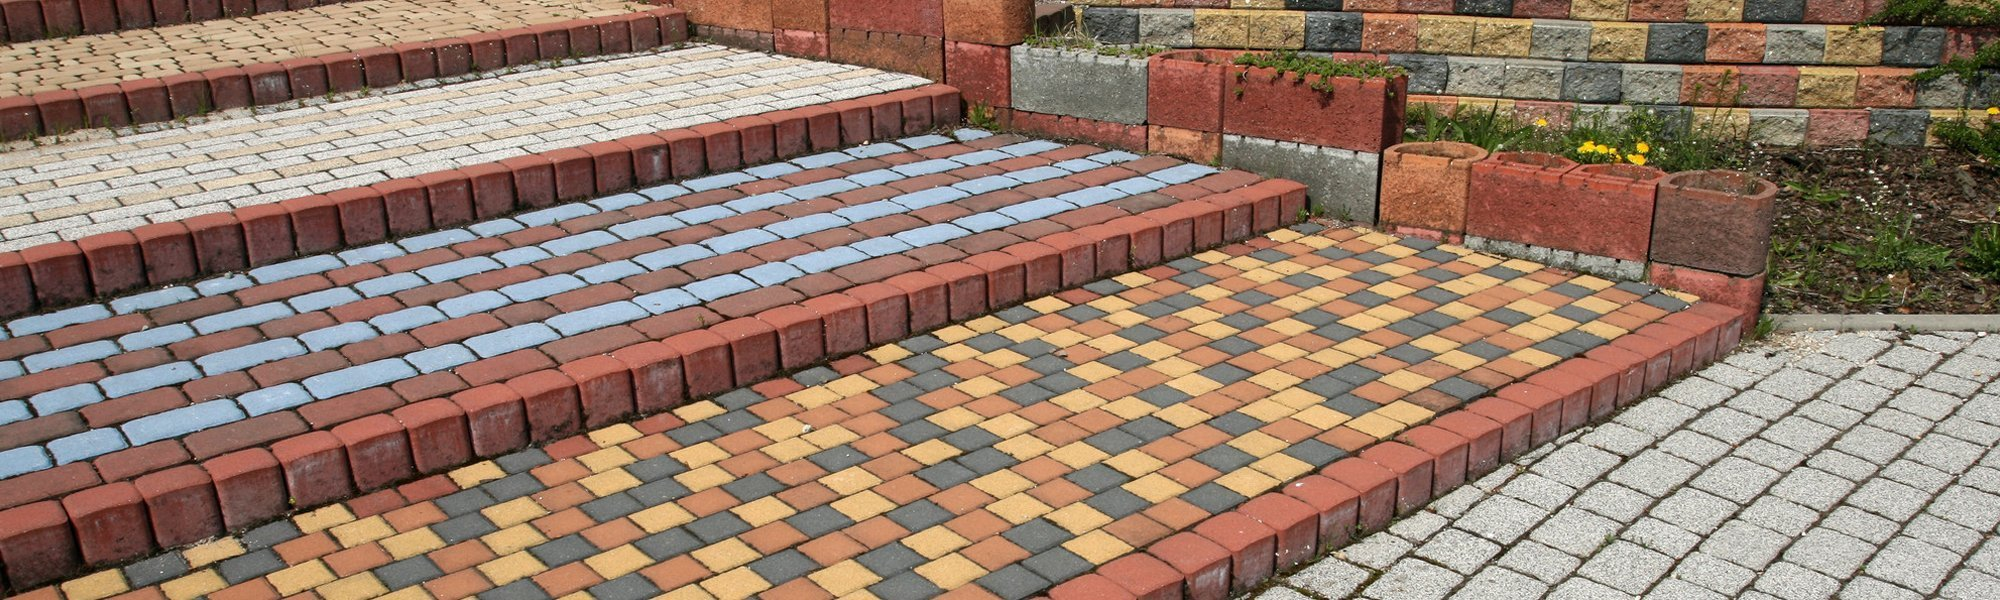 Experienced pavers